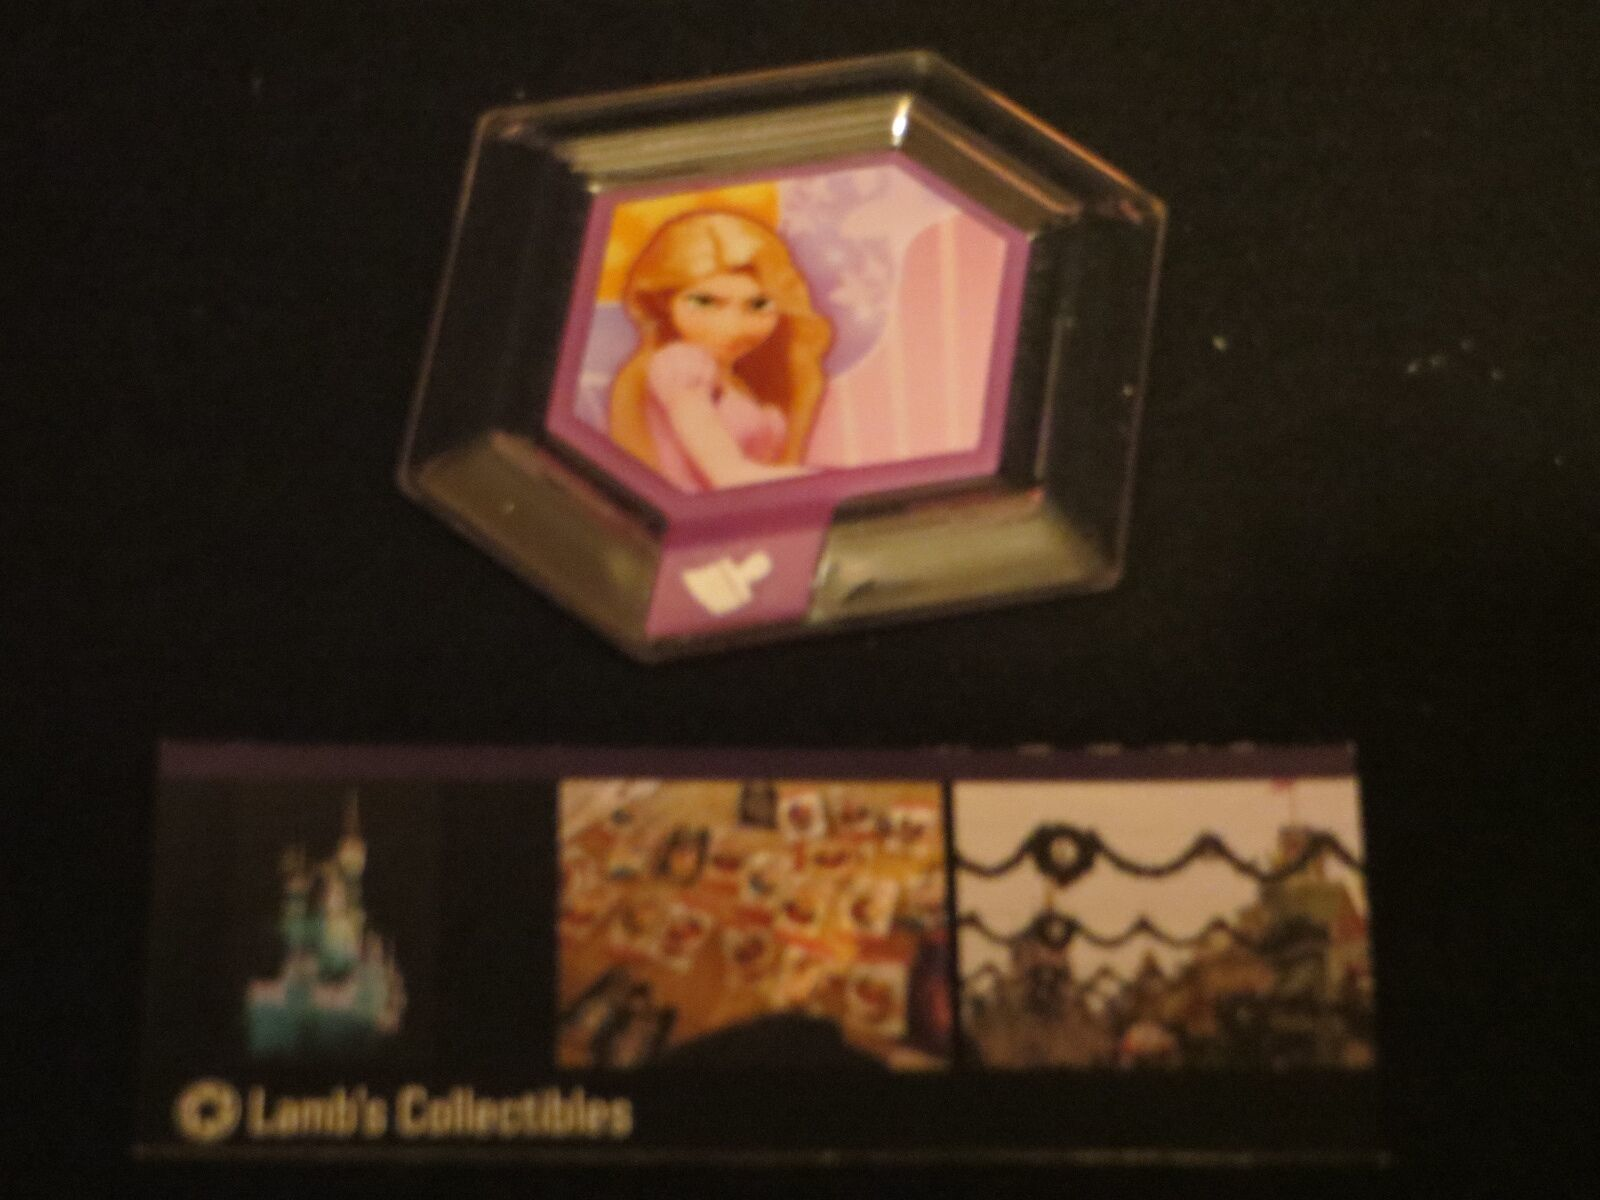 Primary image for Rapunzel's Kingdom Series 1 Disney Infinity Power Disc - video game accessory